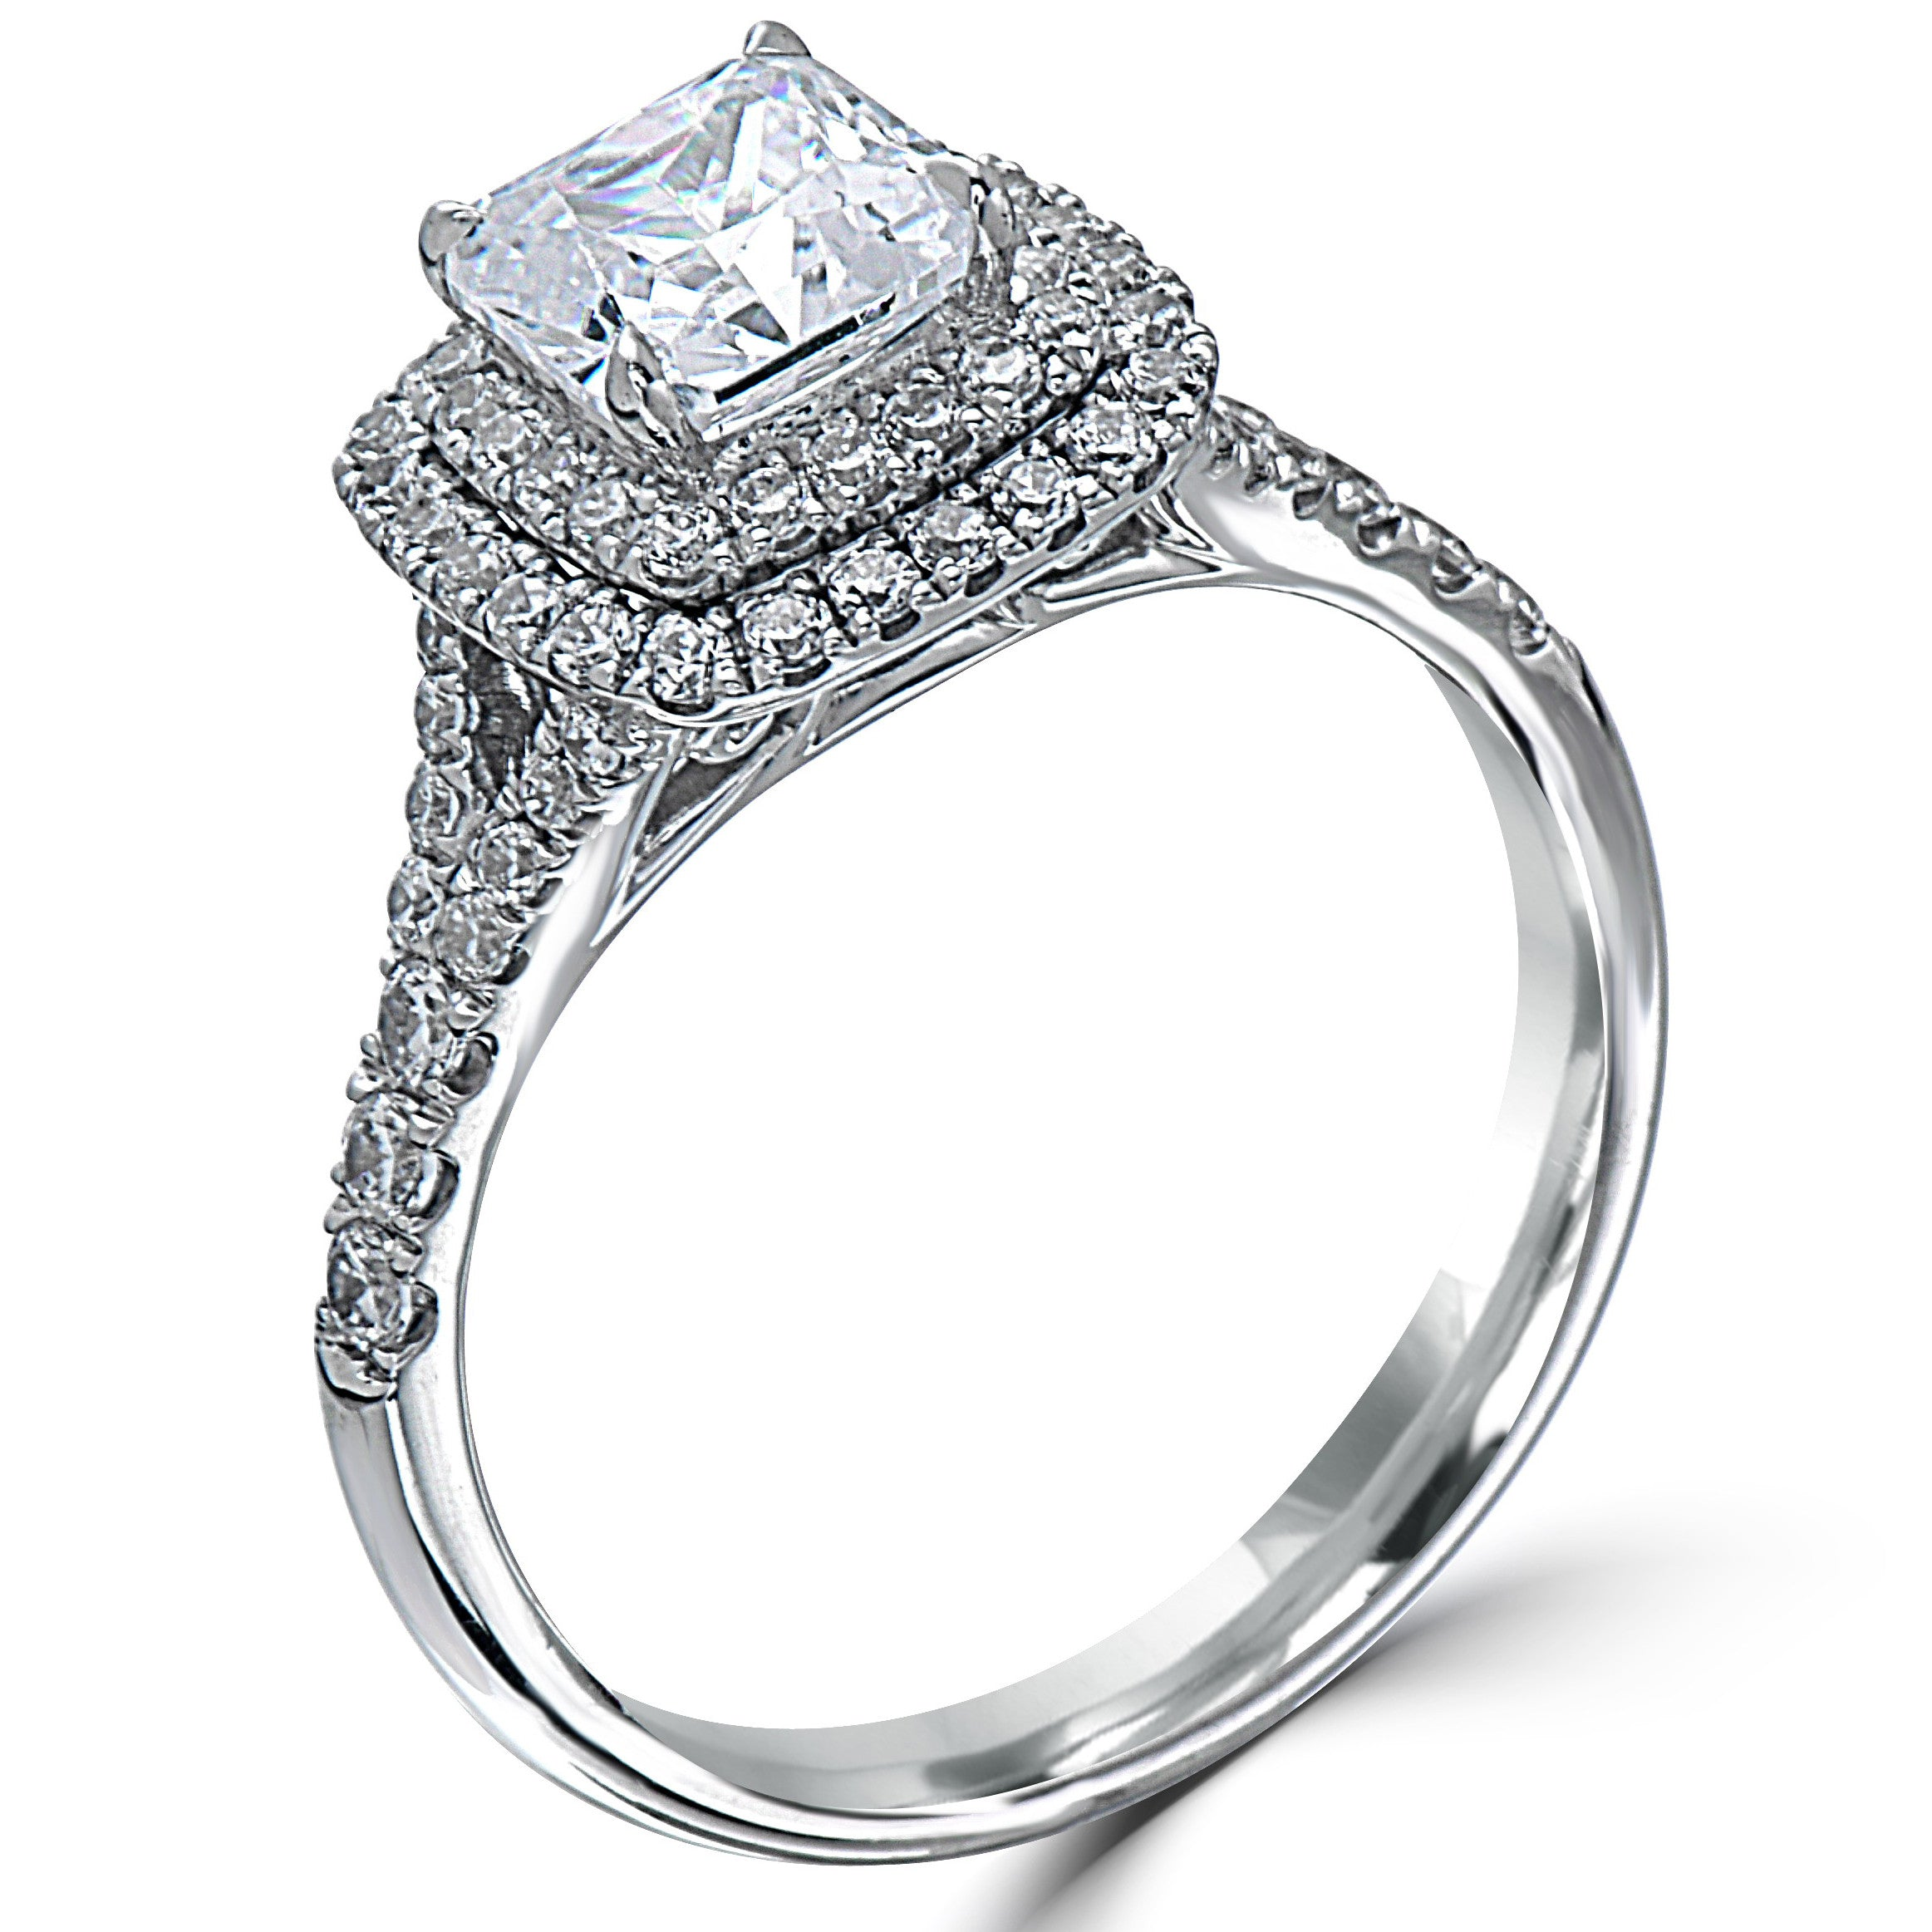 custom diamond ring white cut engagement setting brilliant rings gold karat jewellerey pave in